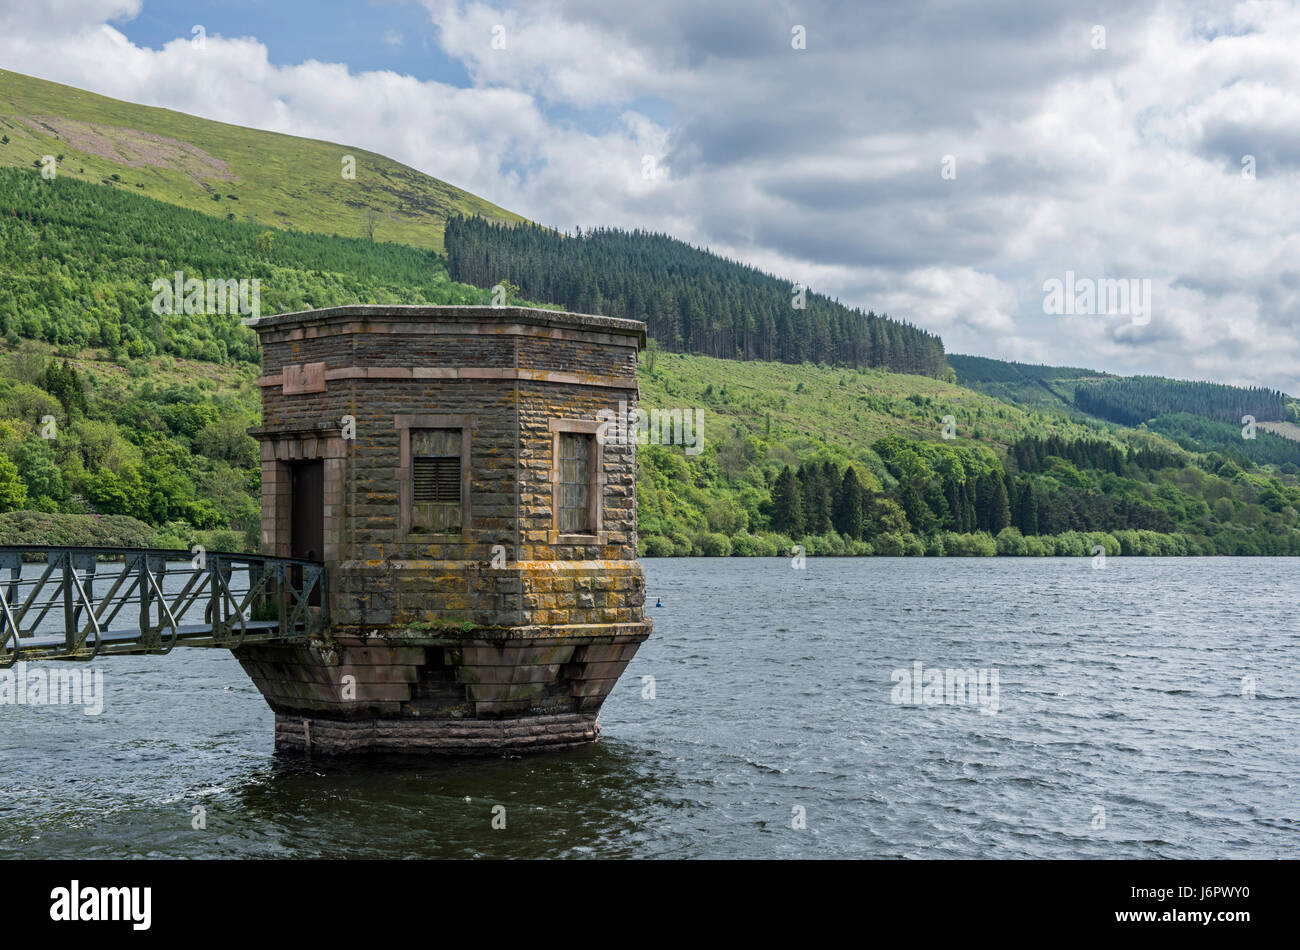 Water tower Talybont reservoir brecon beacons national park wales - Stock Image